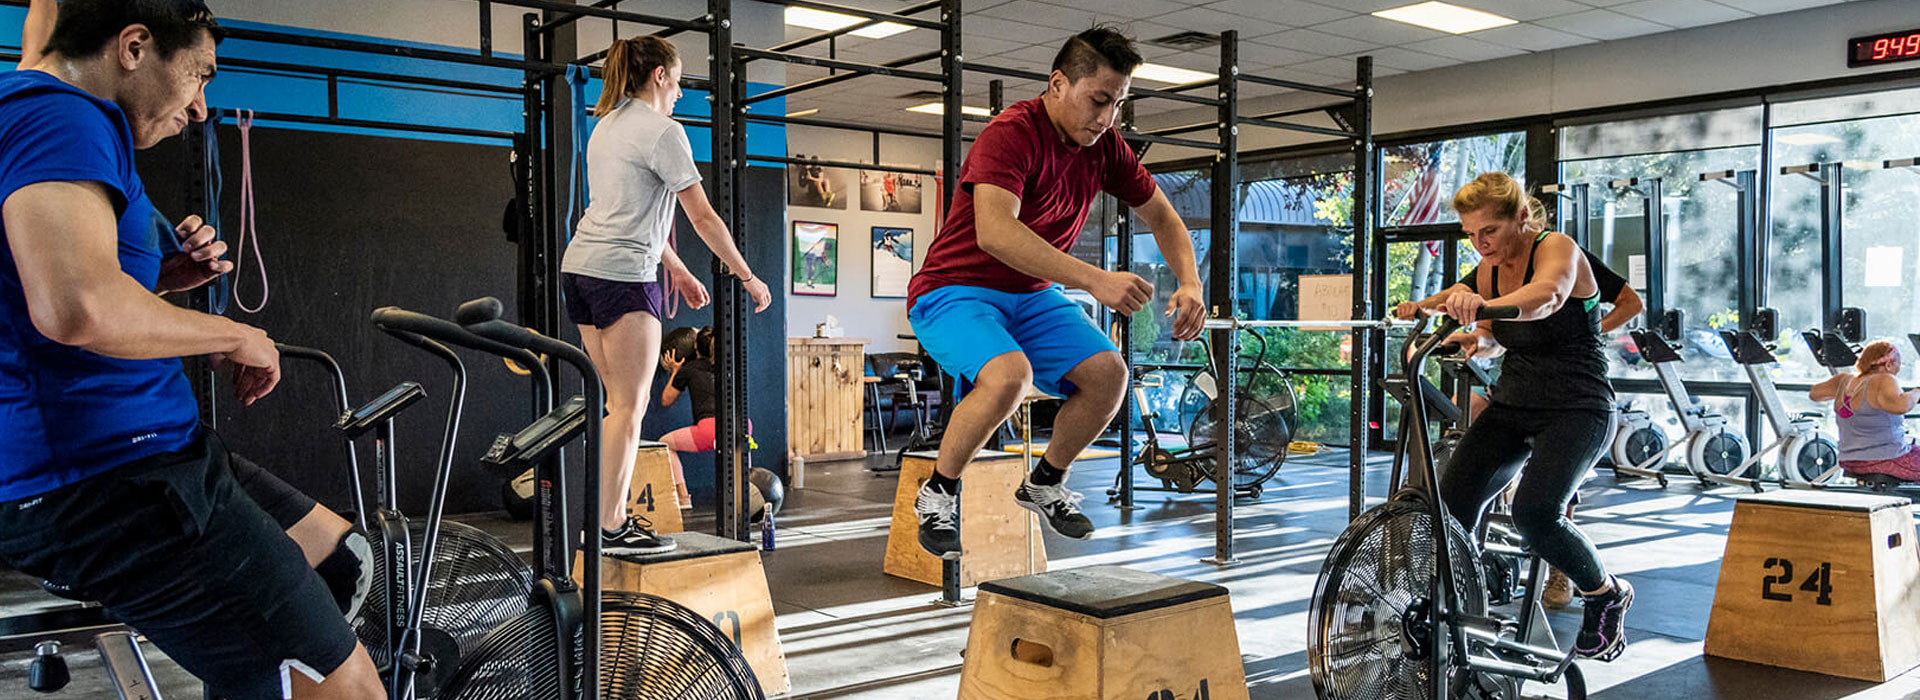 Top 5 Best Gyms to Join in Basalt CO, Top 5 Best Gyms to Join near El Jebel CO, Top 5 Best Gyms to Join near Snowmass CO, Top 5 Best Gyms to Join near Carbondale CO, Top 5 Best Gyms to Join near Woody Creek CO, Top 5 Best Gyms to Join near Aspen CO